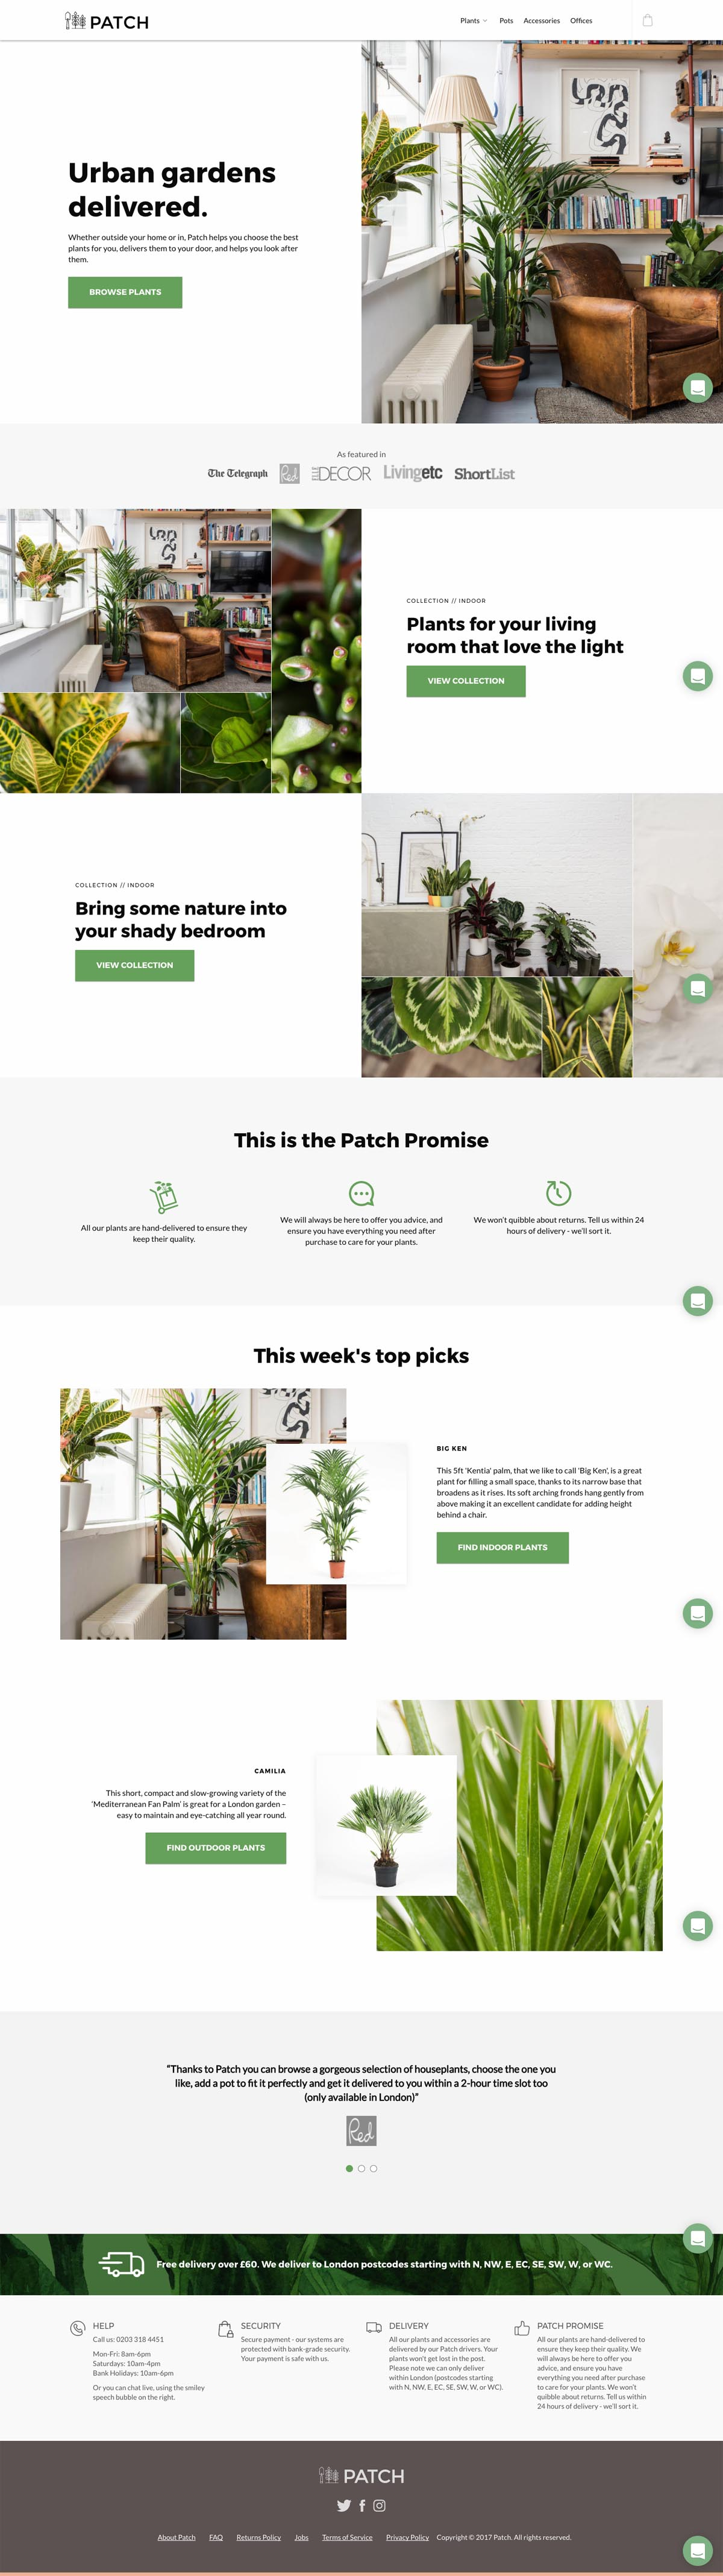 eCommerce website: Patch